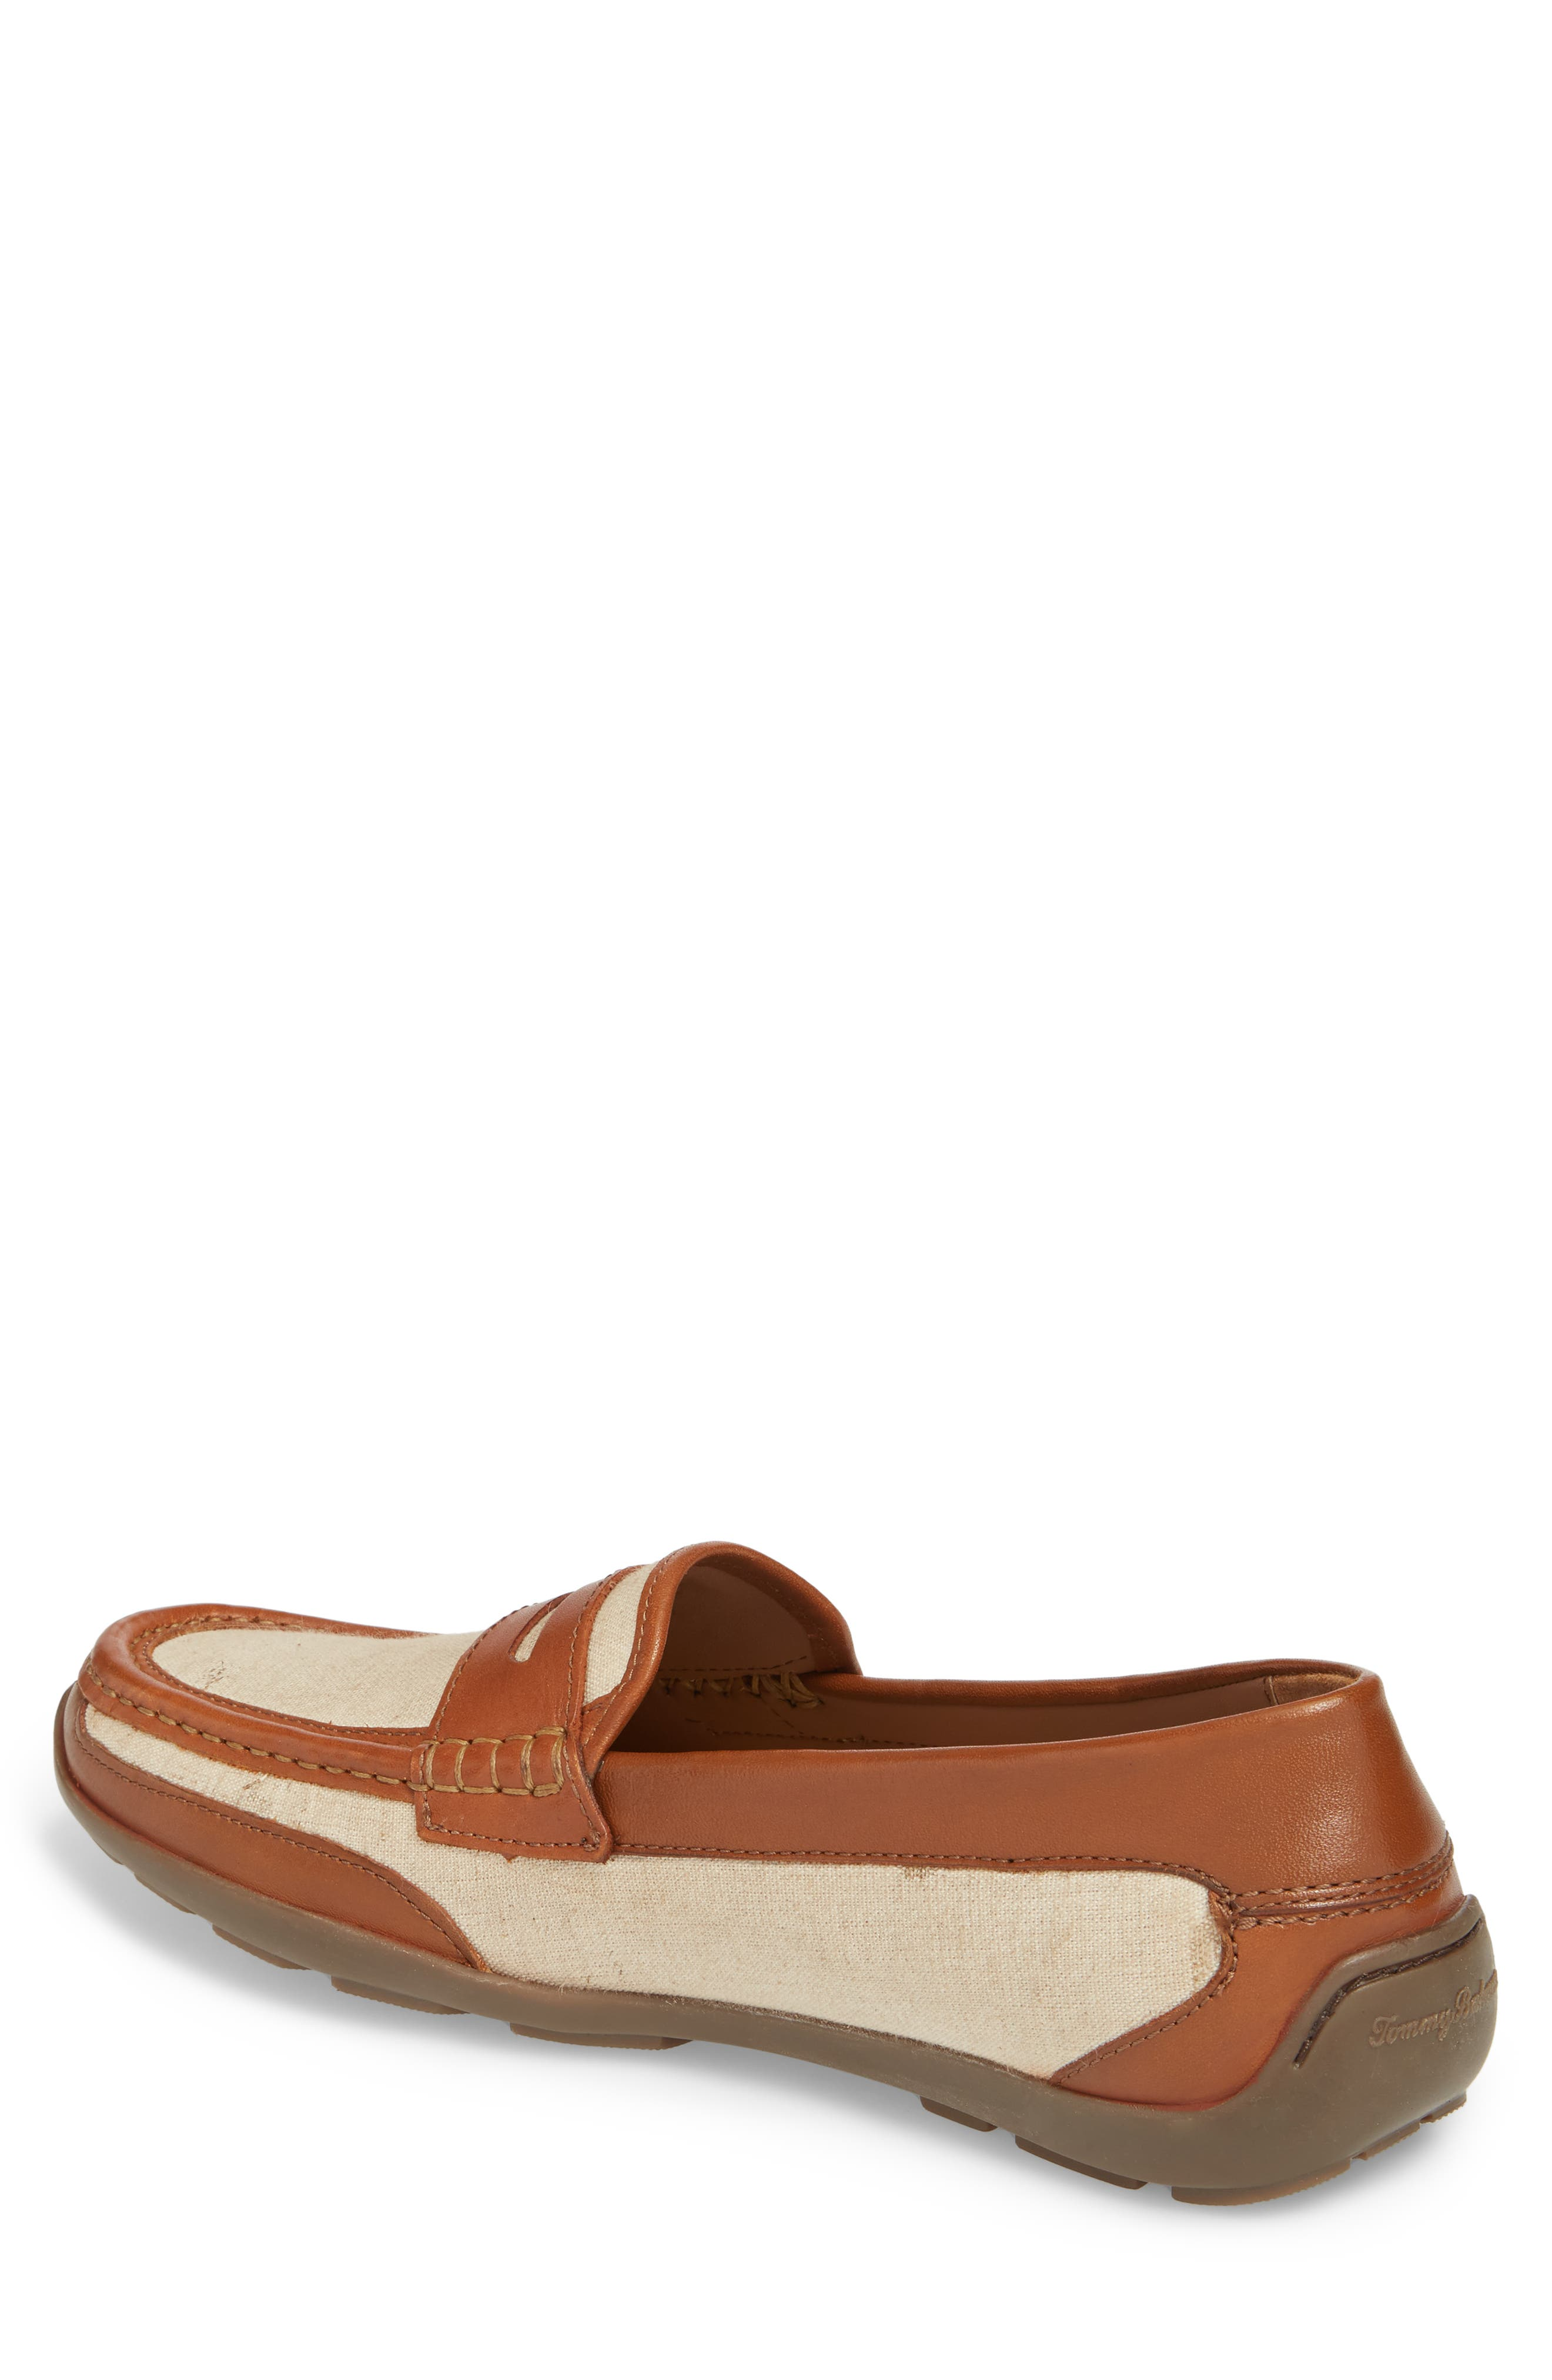 Taza Fronds Driving Shoe,                             Alternate thumbnail 2, color,                             Brown/ Natural Leather/ Linen